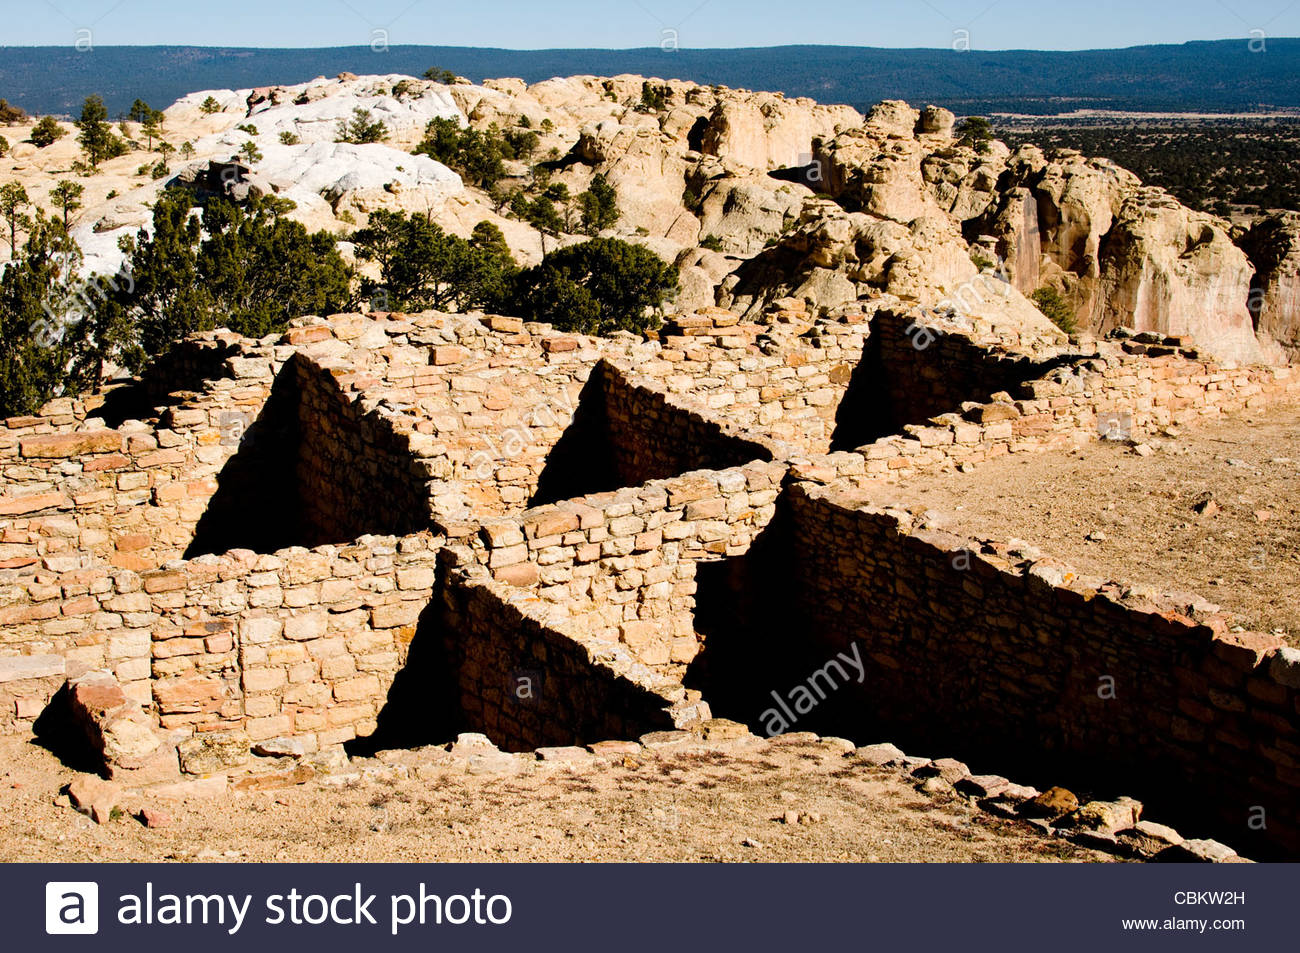 The Zuni Indians Of New Mexico Stock Photo, Royalty Free Image.